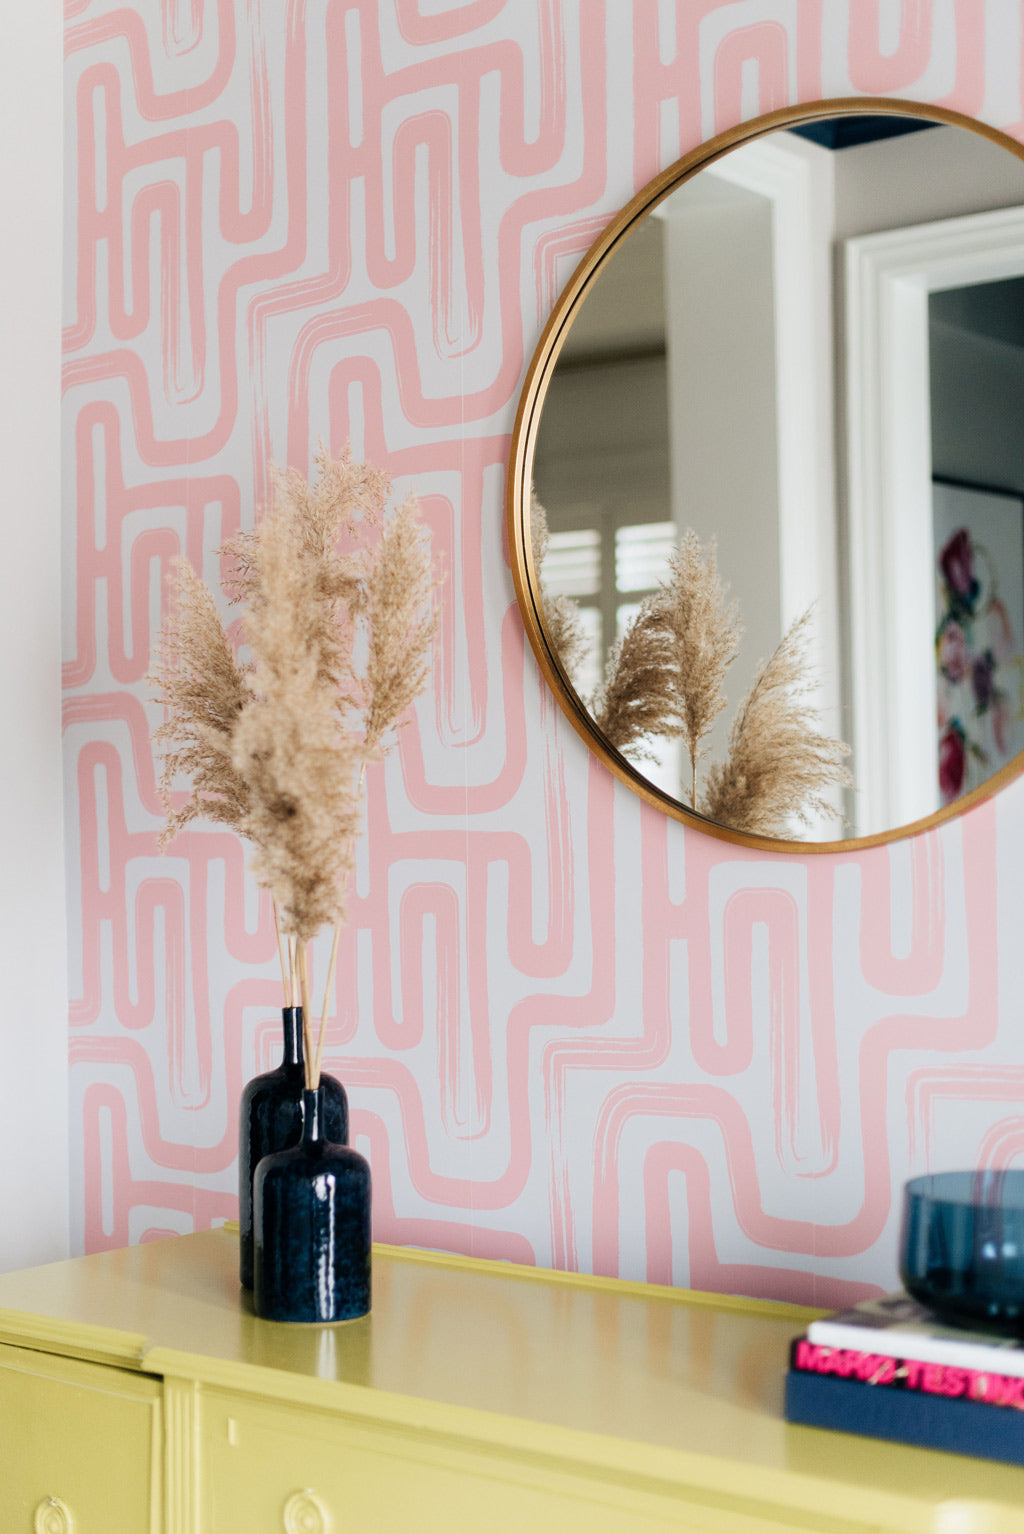 Modern eclectic style foyer interior with pink removable wallpaper